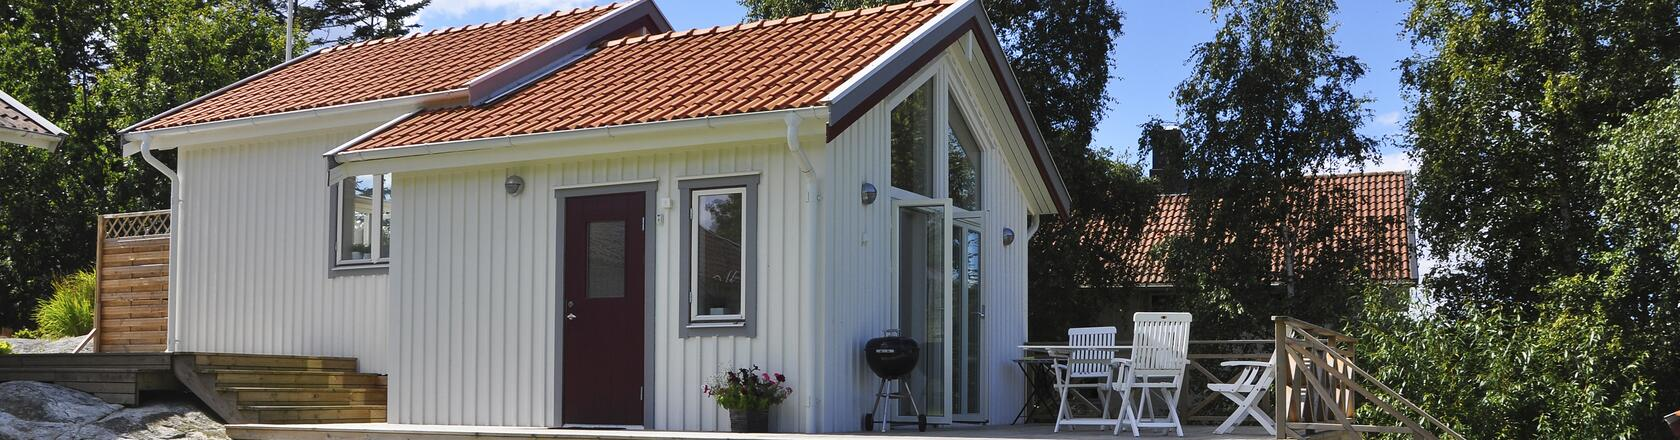 Ucklum in Sweden - Rent a holiday home  with DanCenter